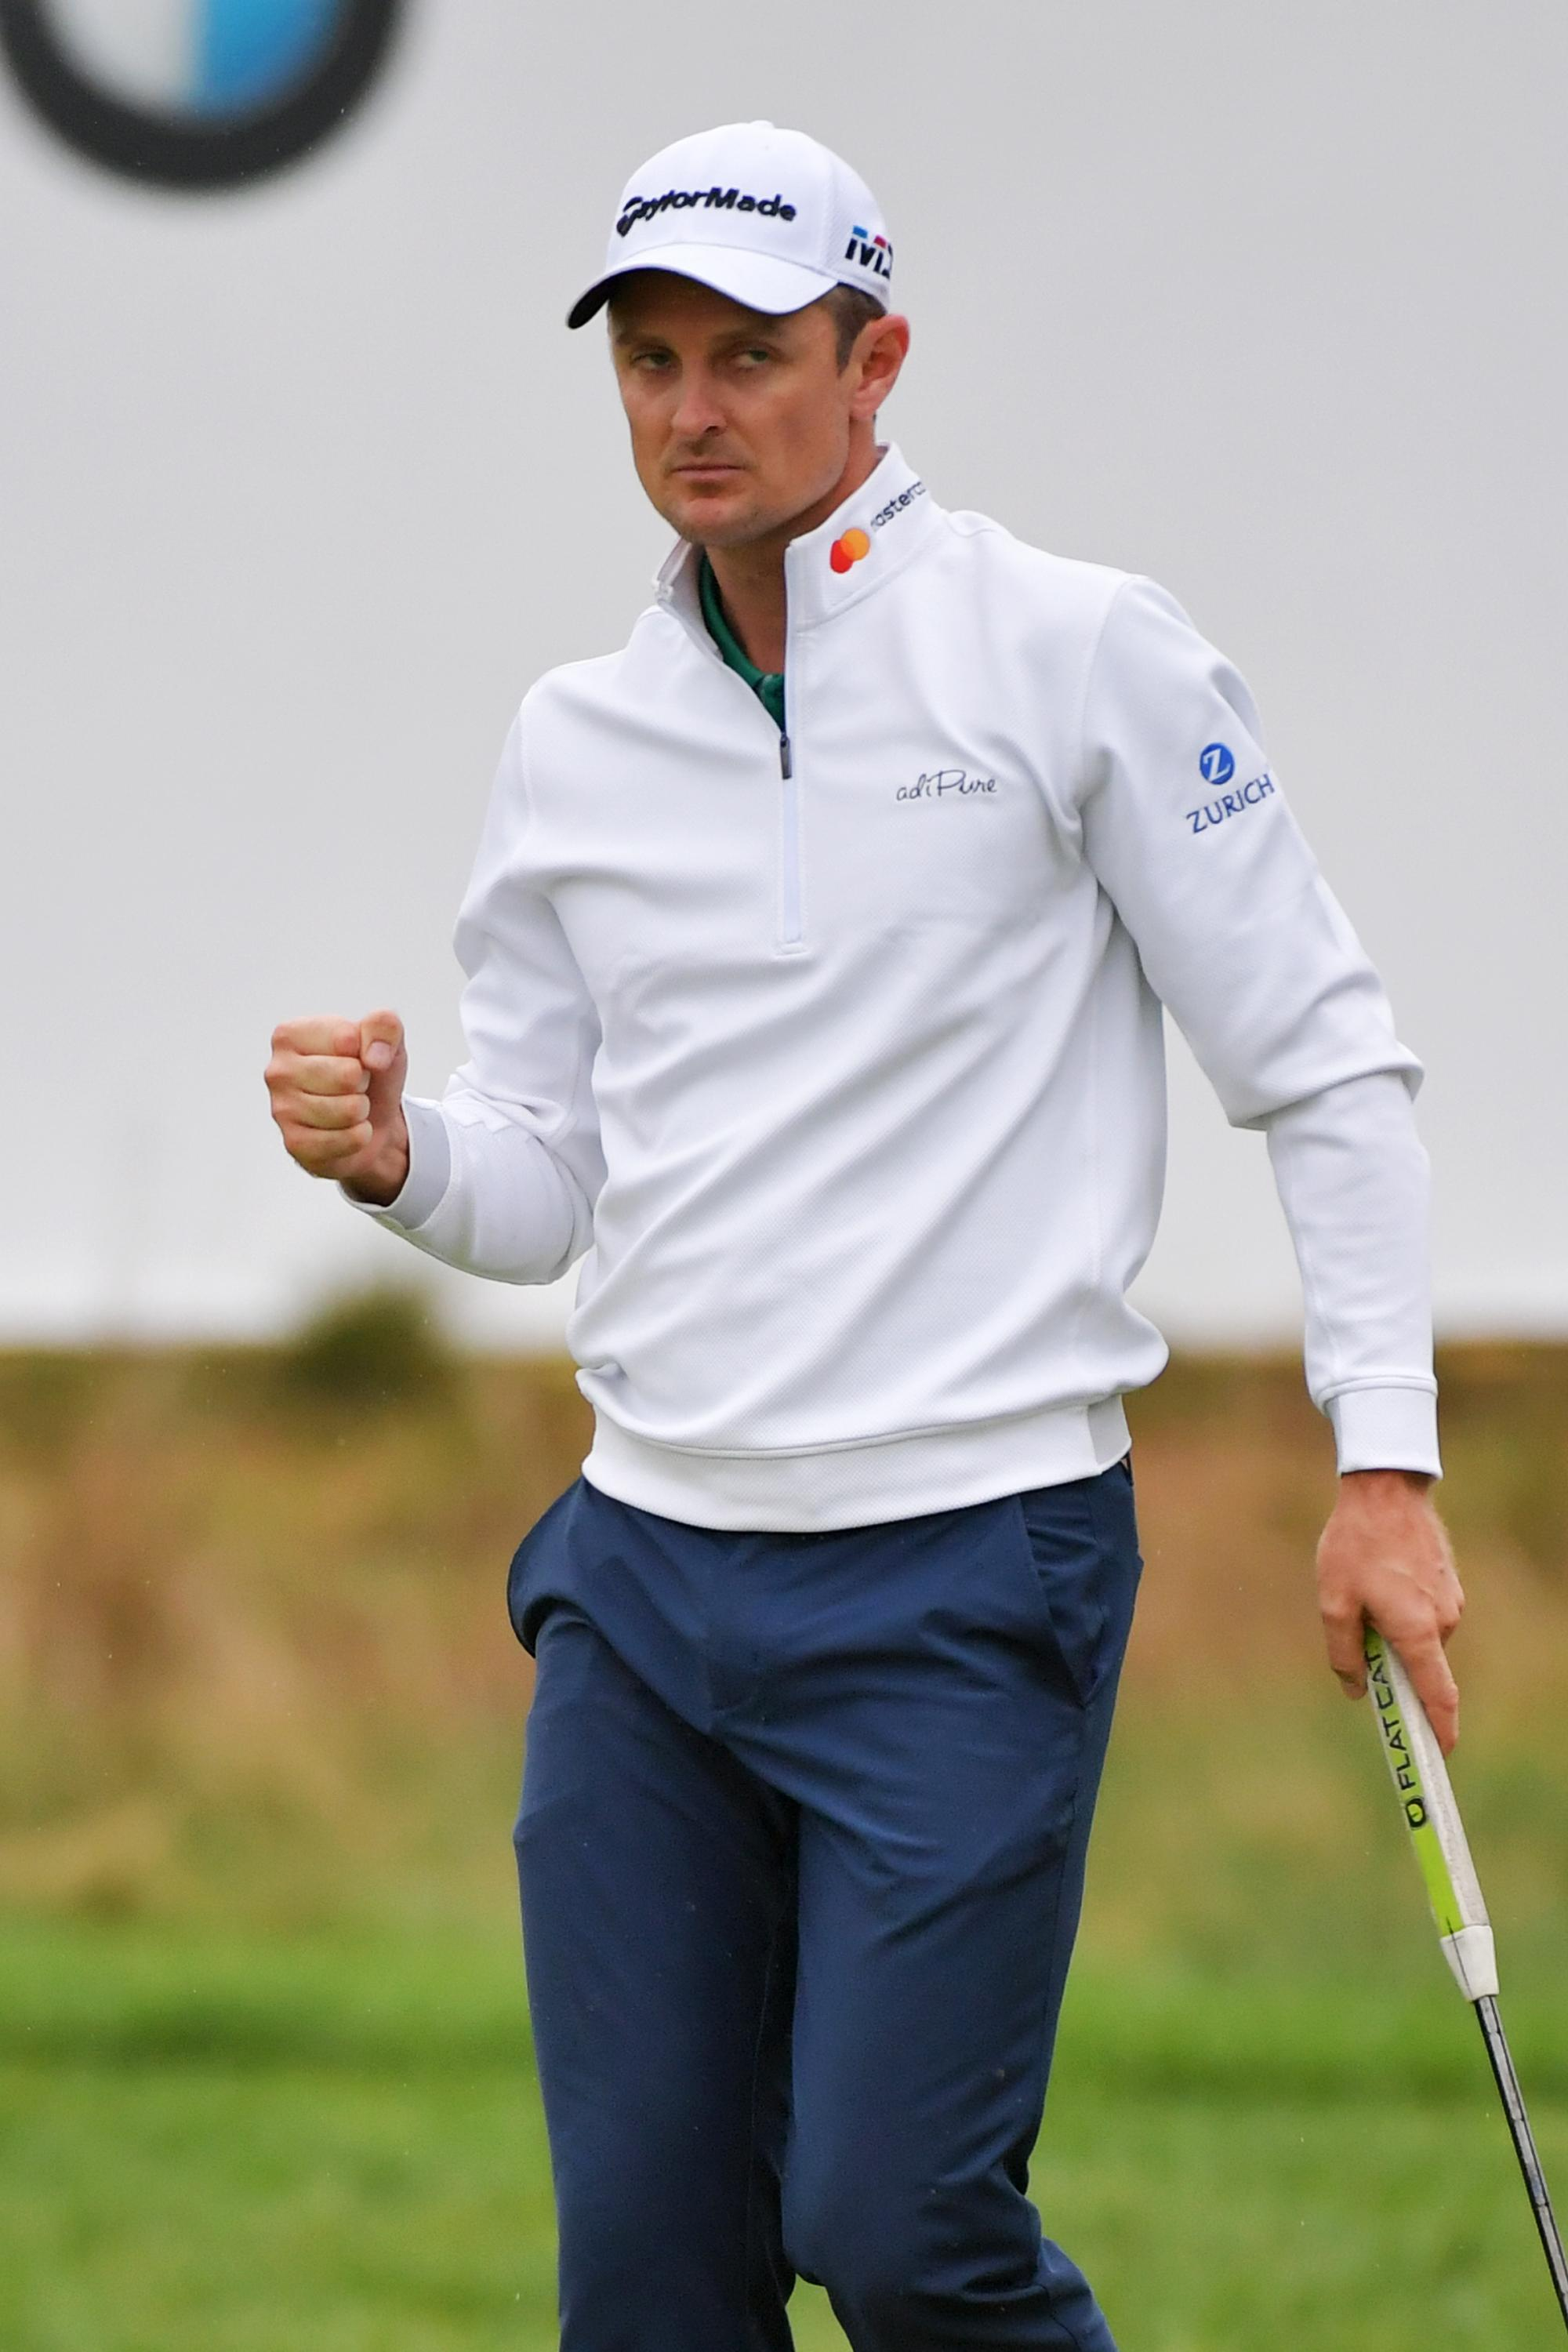 Rose became world No 1 for the first time after his second place finish at the BMW Championship